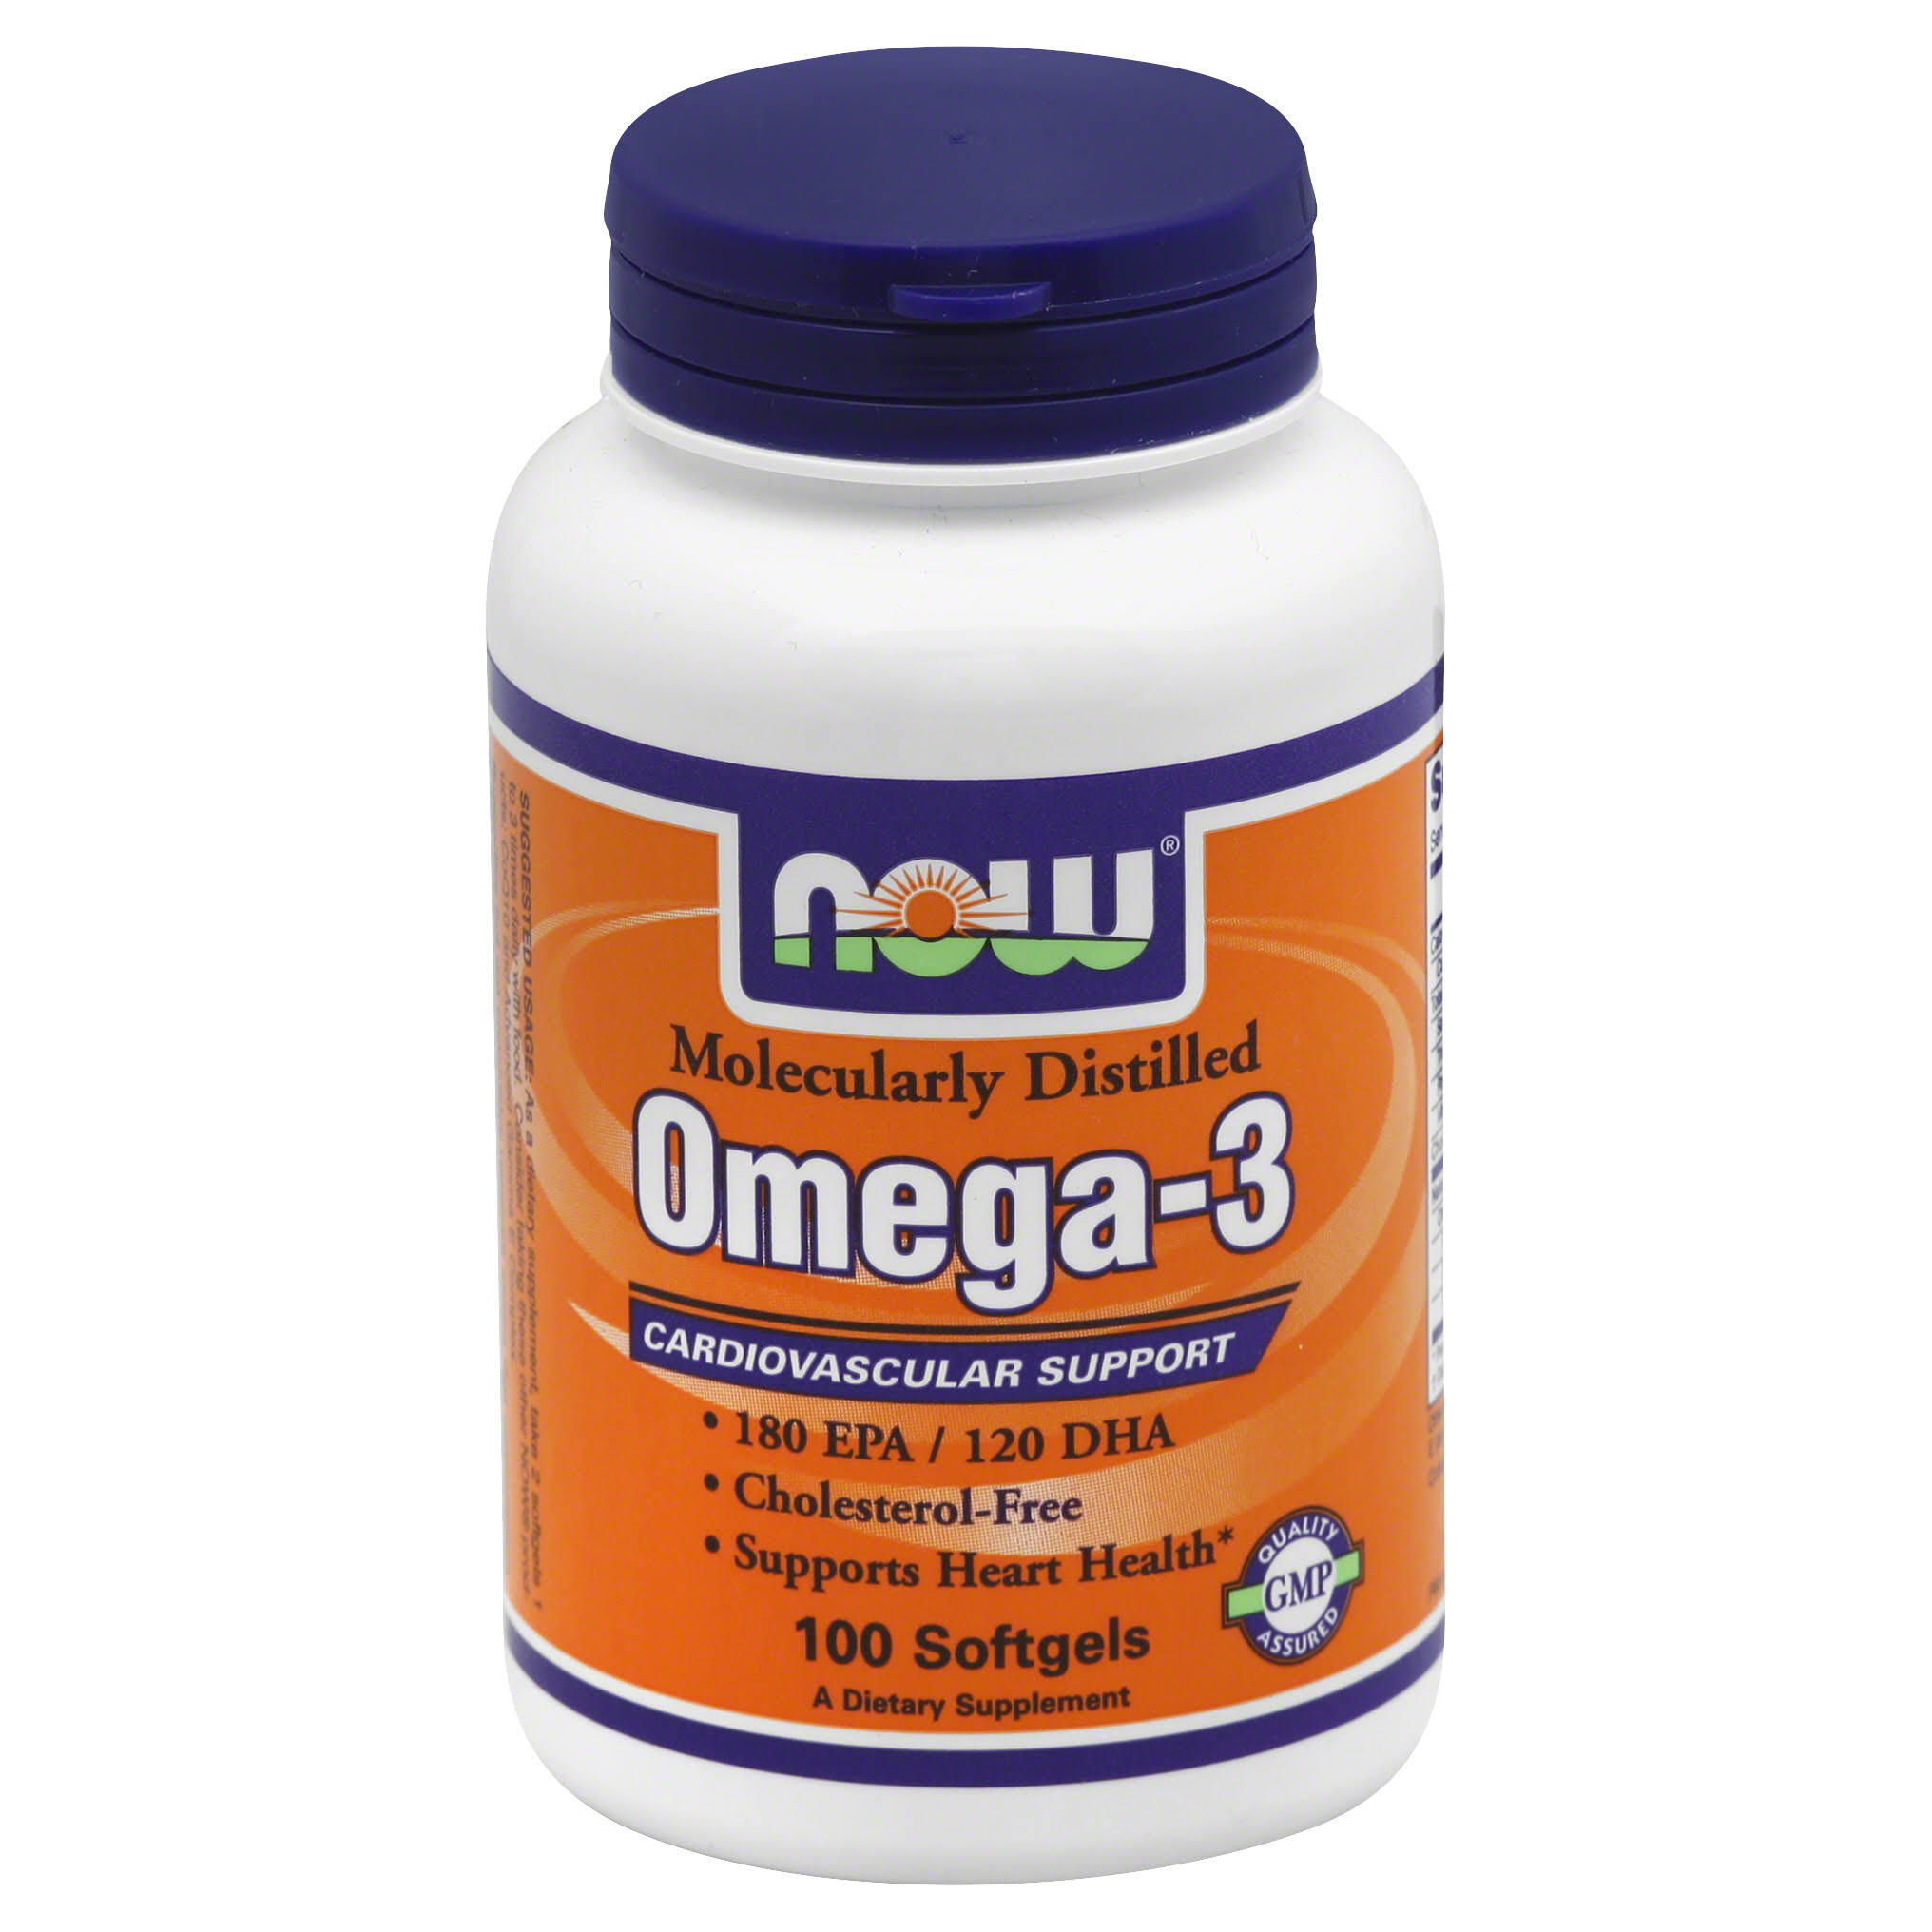 Now Omega-3 Cardiovascular Support - 100 Softgels